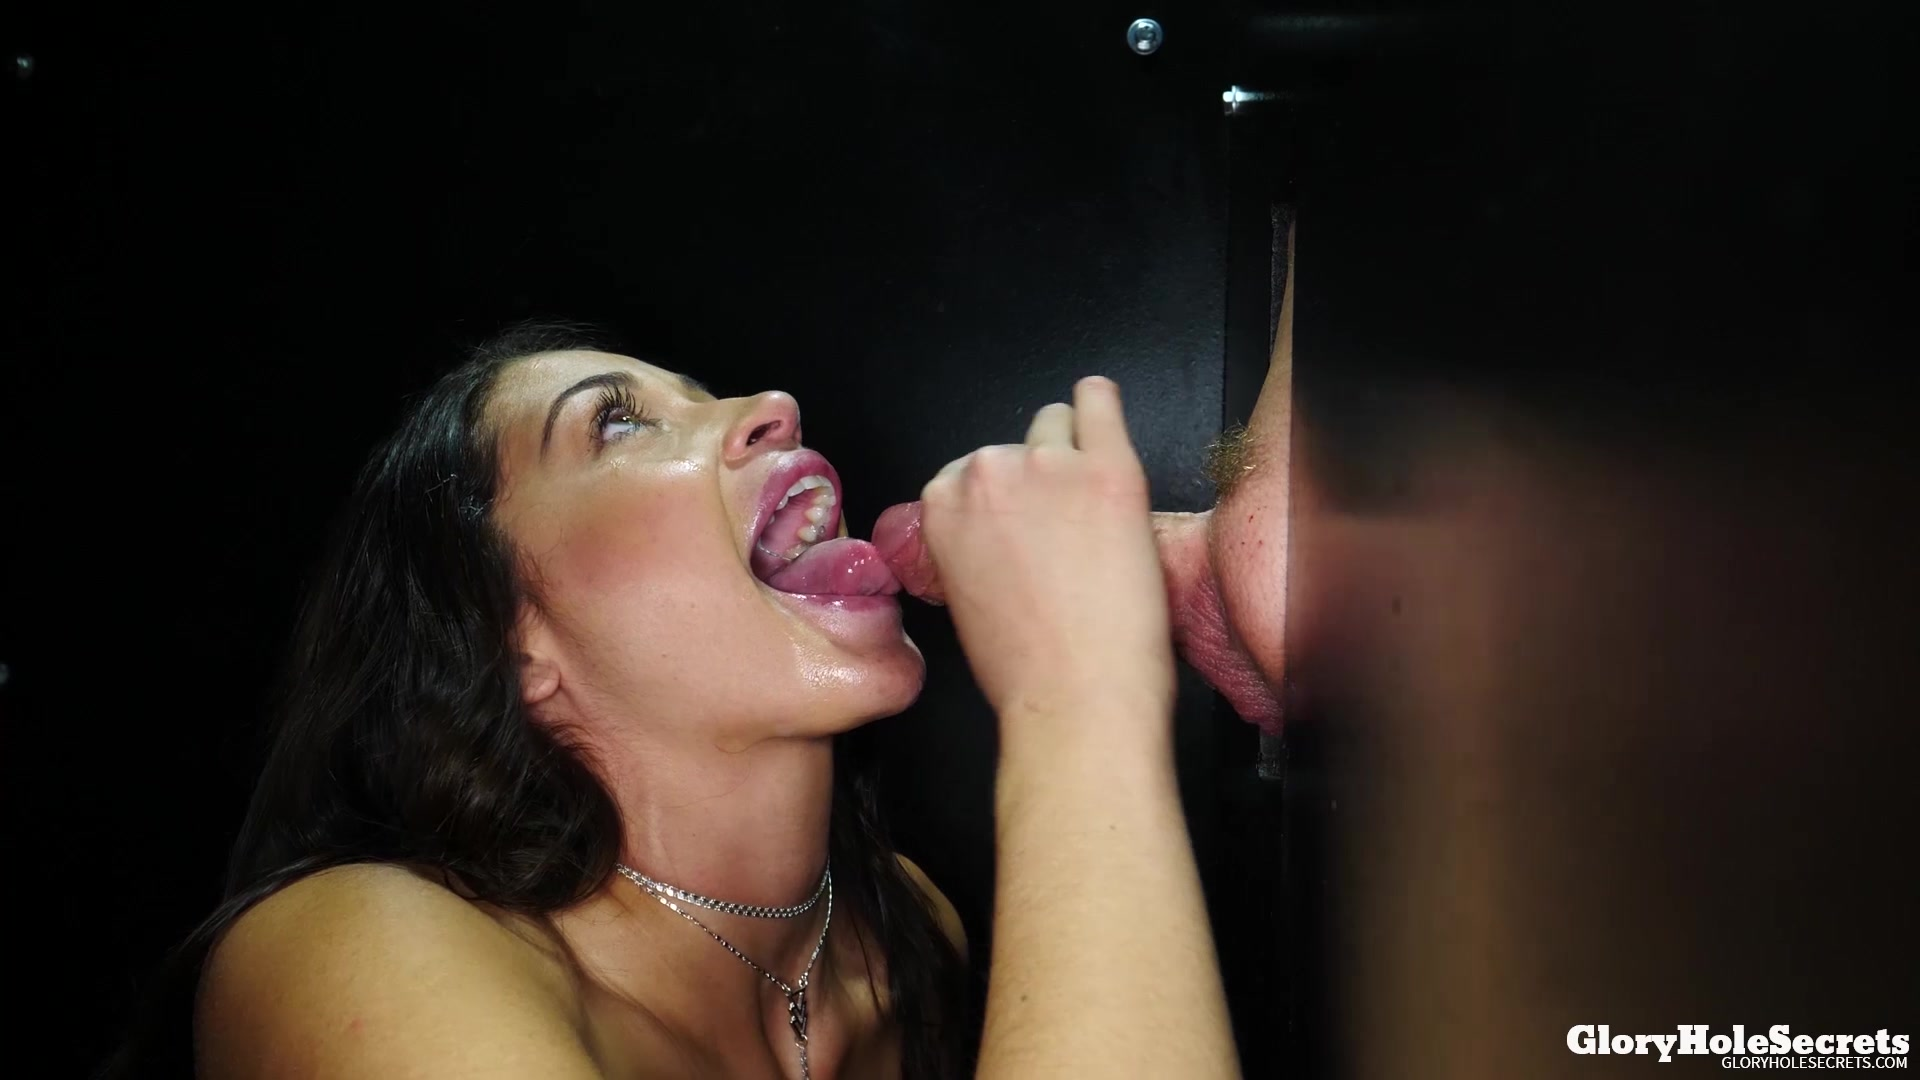 Gets fuck adult video stores with glory holes licking